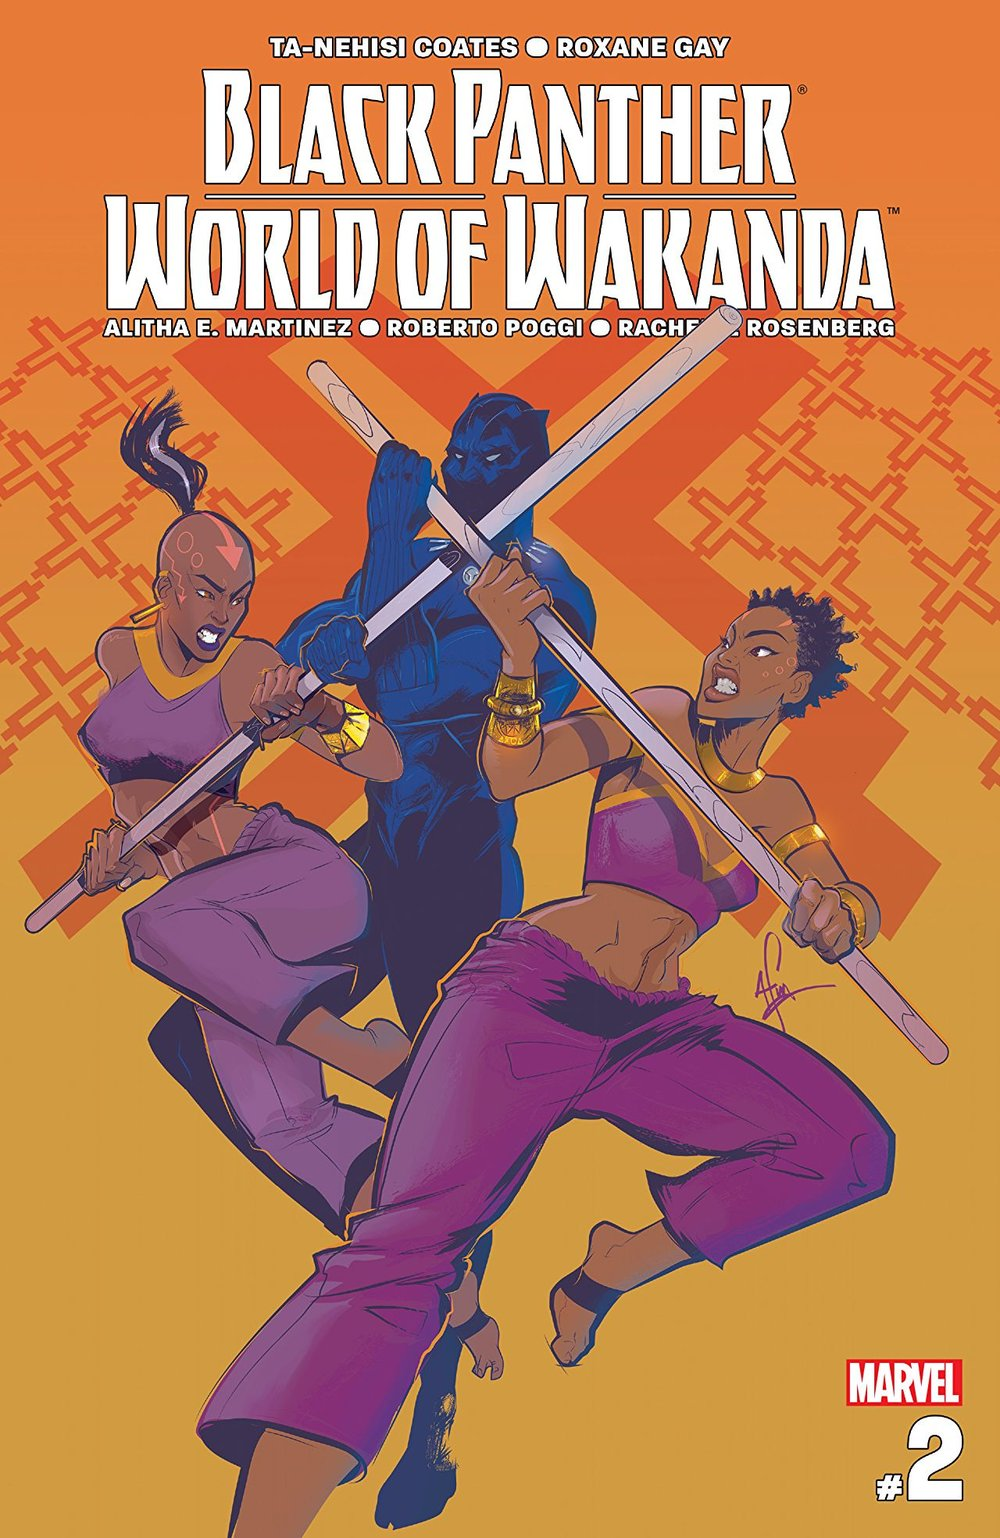 Black Panther_World Of Wakanda (2017) #2, cover by Afua Richardson.